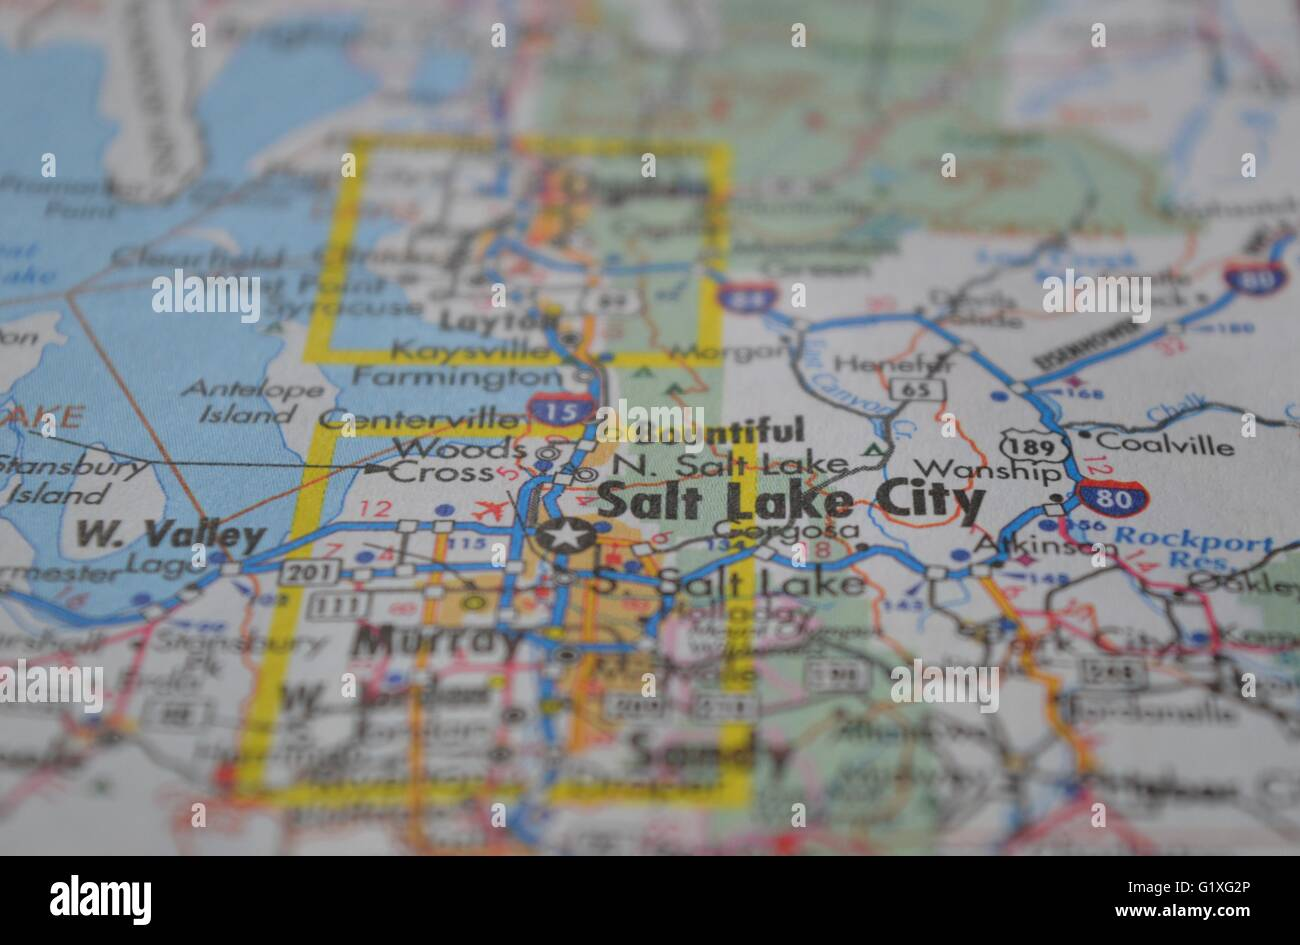 Salt Lake City Map Stock Photo: 104460238 - Alamy